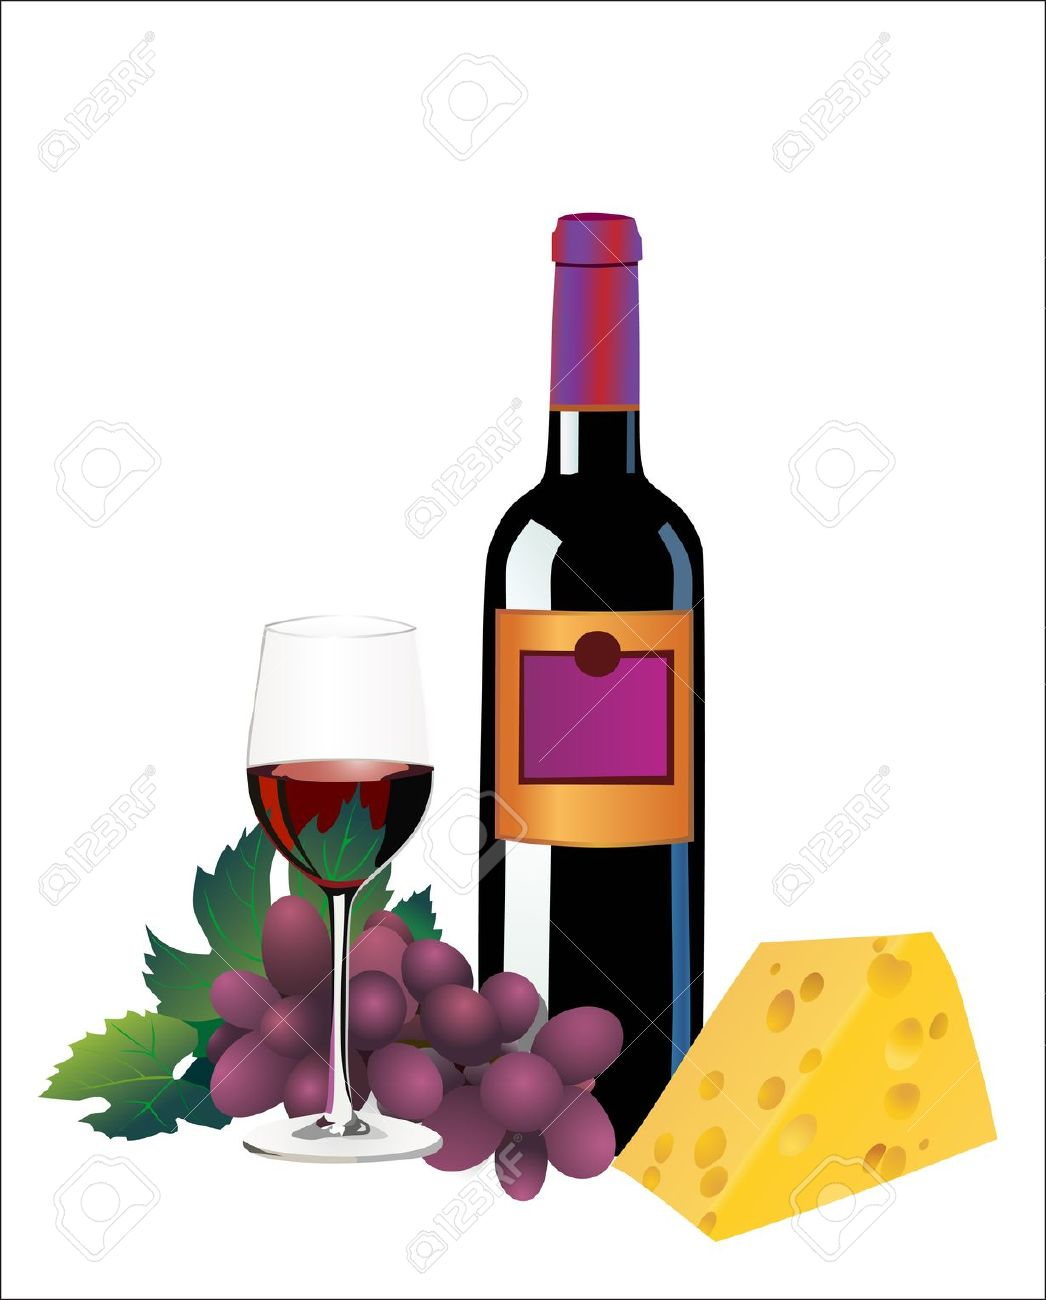 Free Wine Party Cliparts, Download Free Clip Art, Free Clip.